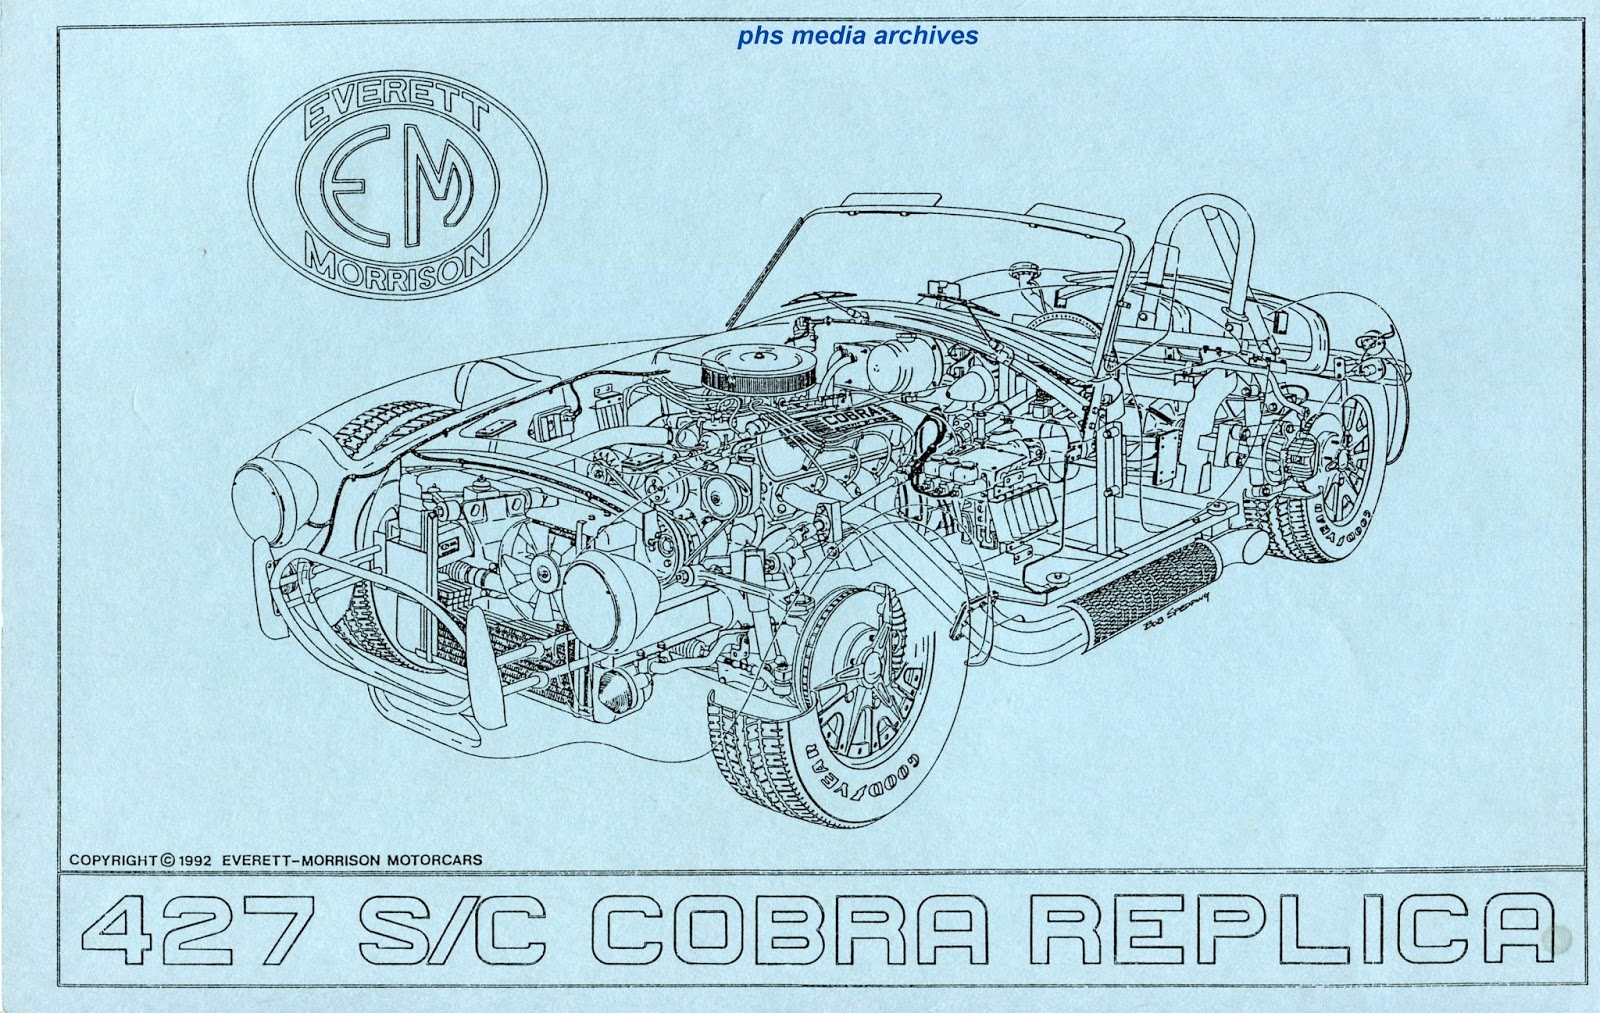 Ac Cobra Kit Car Wiring Diagram Free For You 96 Tahoe Unit America Everett Morrison 427 Sc Rh Phscollectorcarworld Blogspot Com A C Compressor